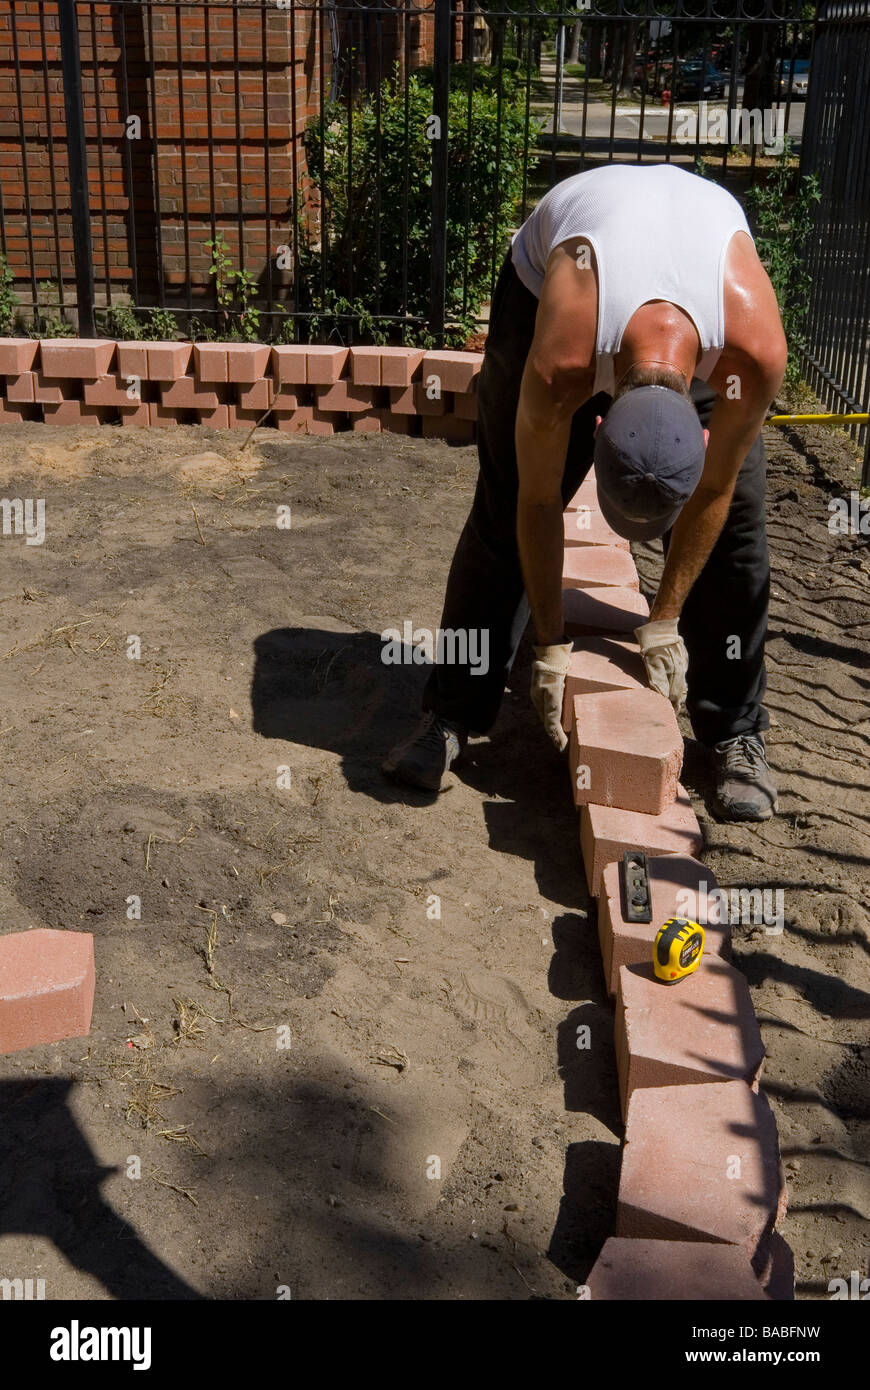 Italian man building flower box retaining wall with pavers for italian man building flower box retaining wall with pavers for flower bed chicago illinois amipublicfo Image collections